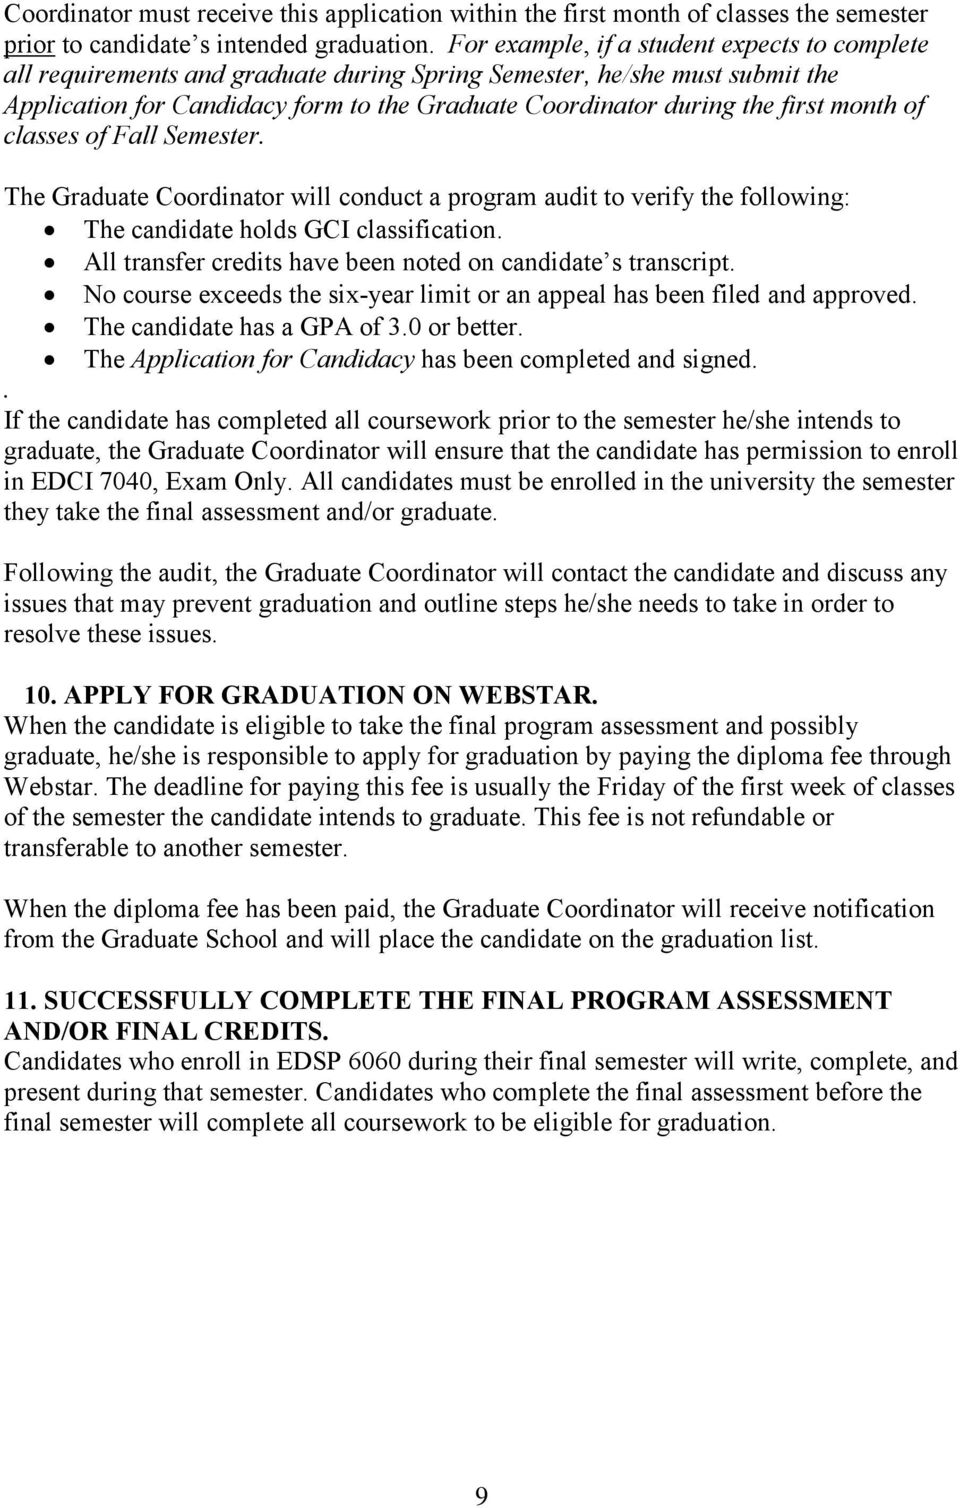 month of classes of Fall Semester. The Graduate Coordinator will conduct a program audit to verify the following: The candidate holds GCI classification.